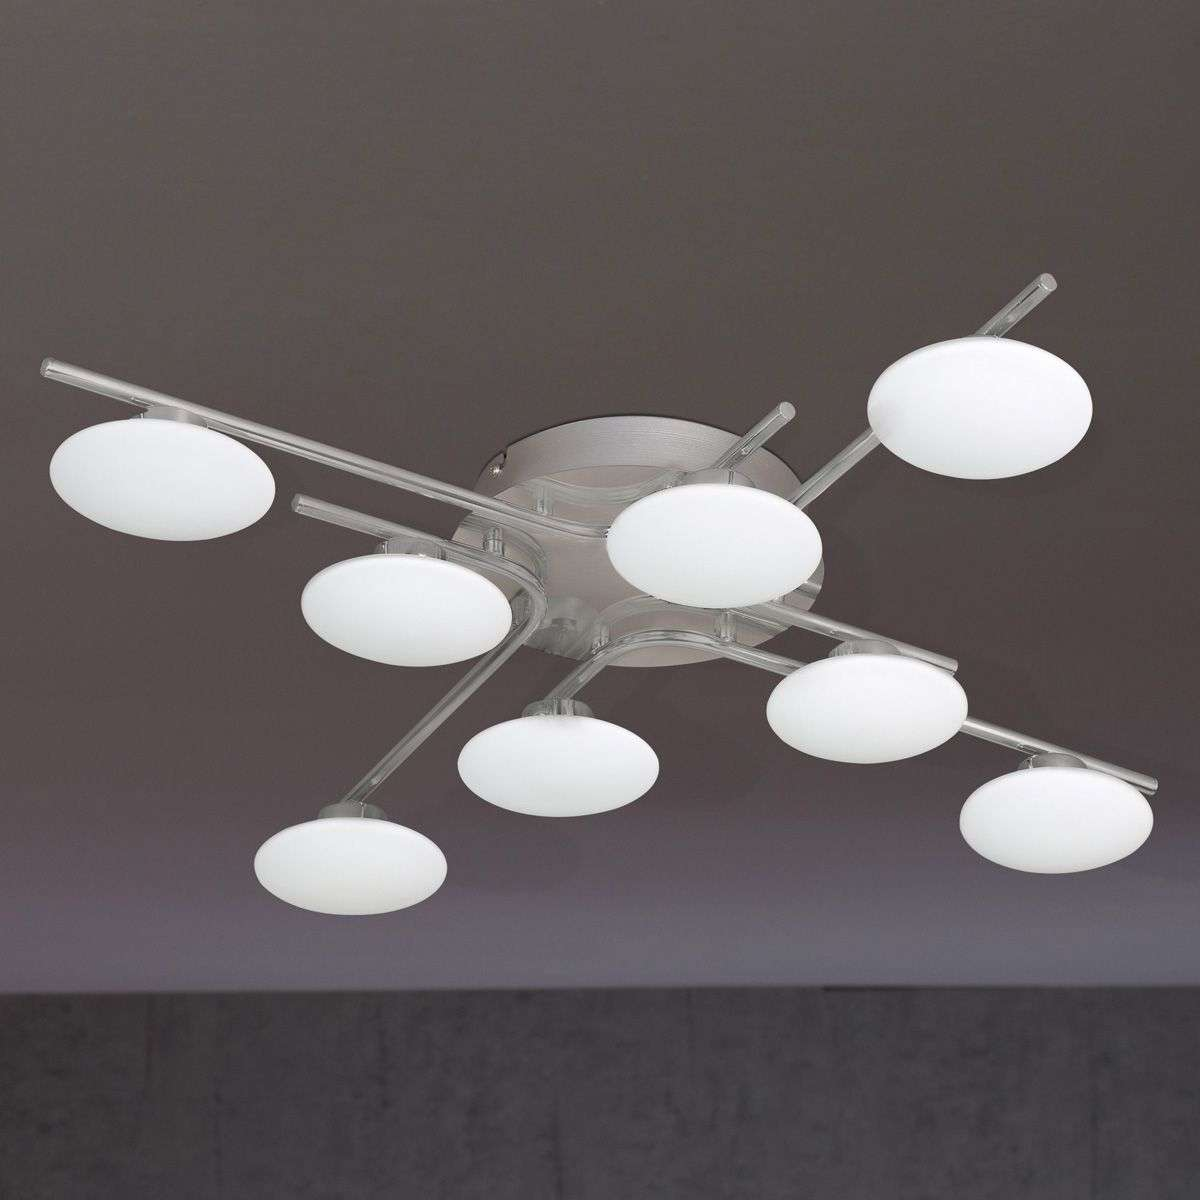 Shop Lights Not Working: Everett LED Ceiling Light With 8 Bulbs